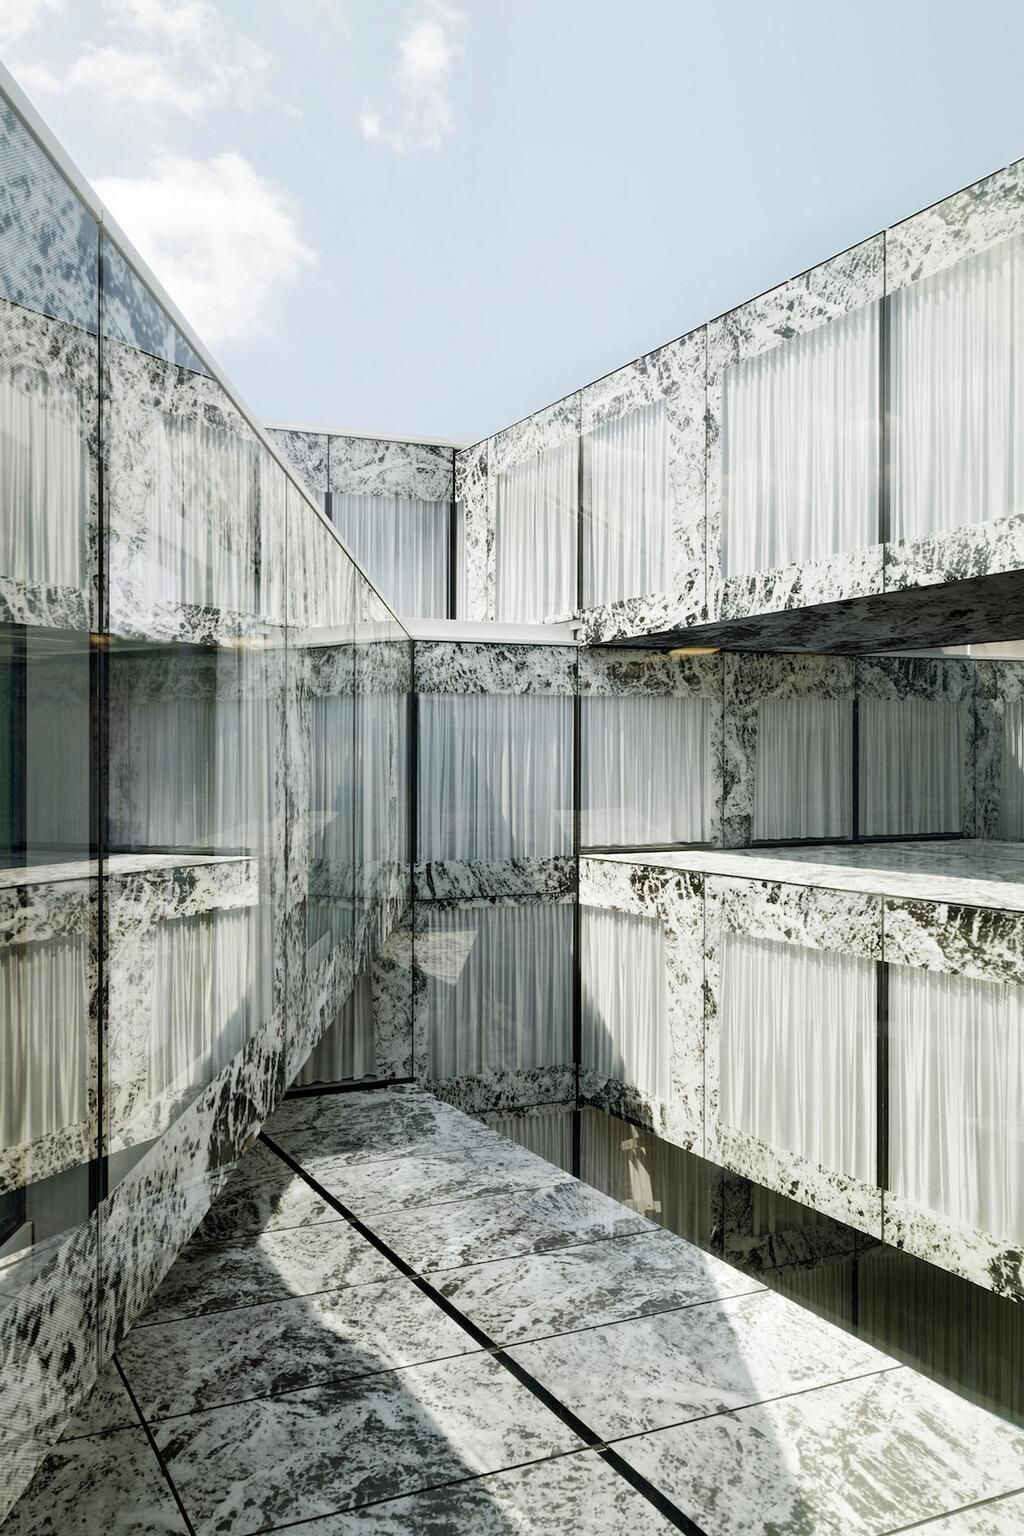 Mies' Barcelona Pavilion Gets Remixed in Zurich by @WielArets: http://bit.ly/1fjsfyX pic.twitter.com/prR7MzJoCn